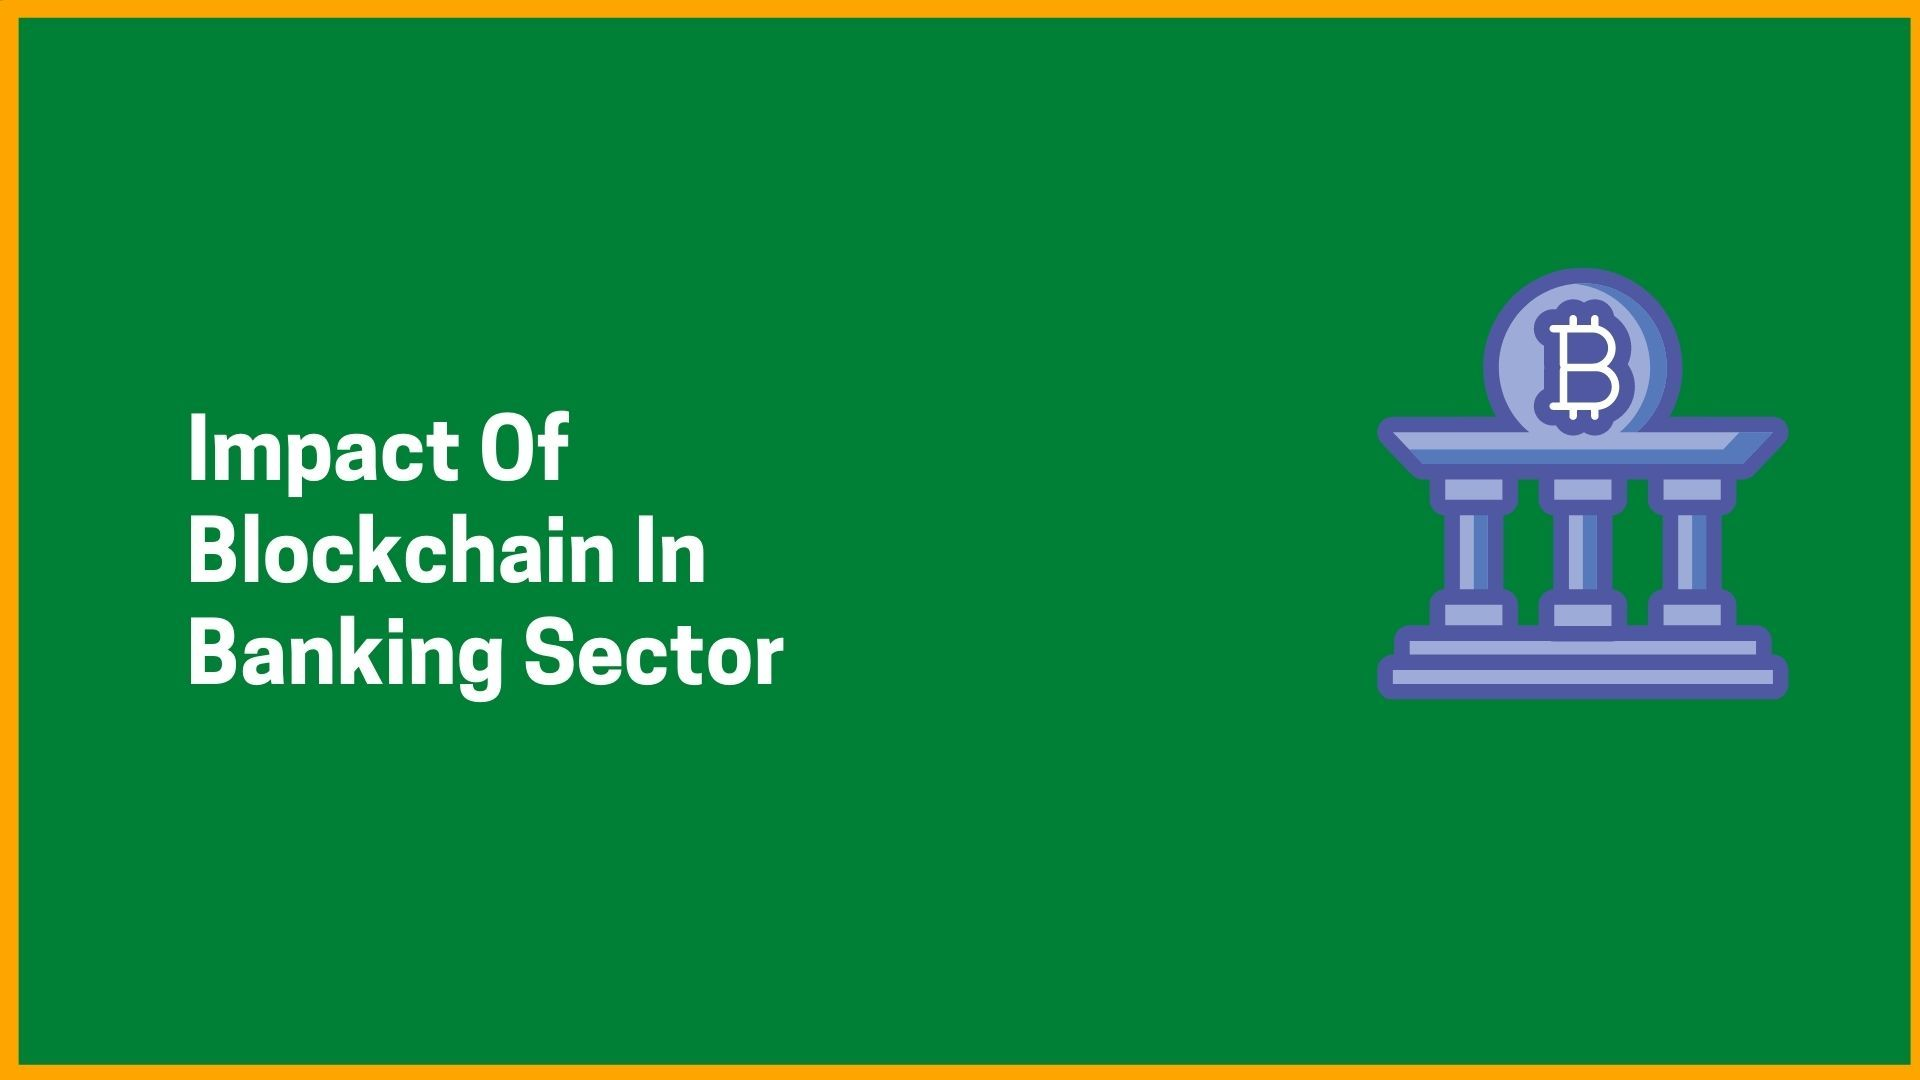 Impact Of Blockchain In Banking Sector